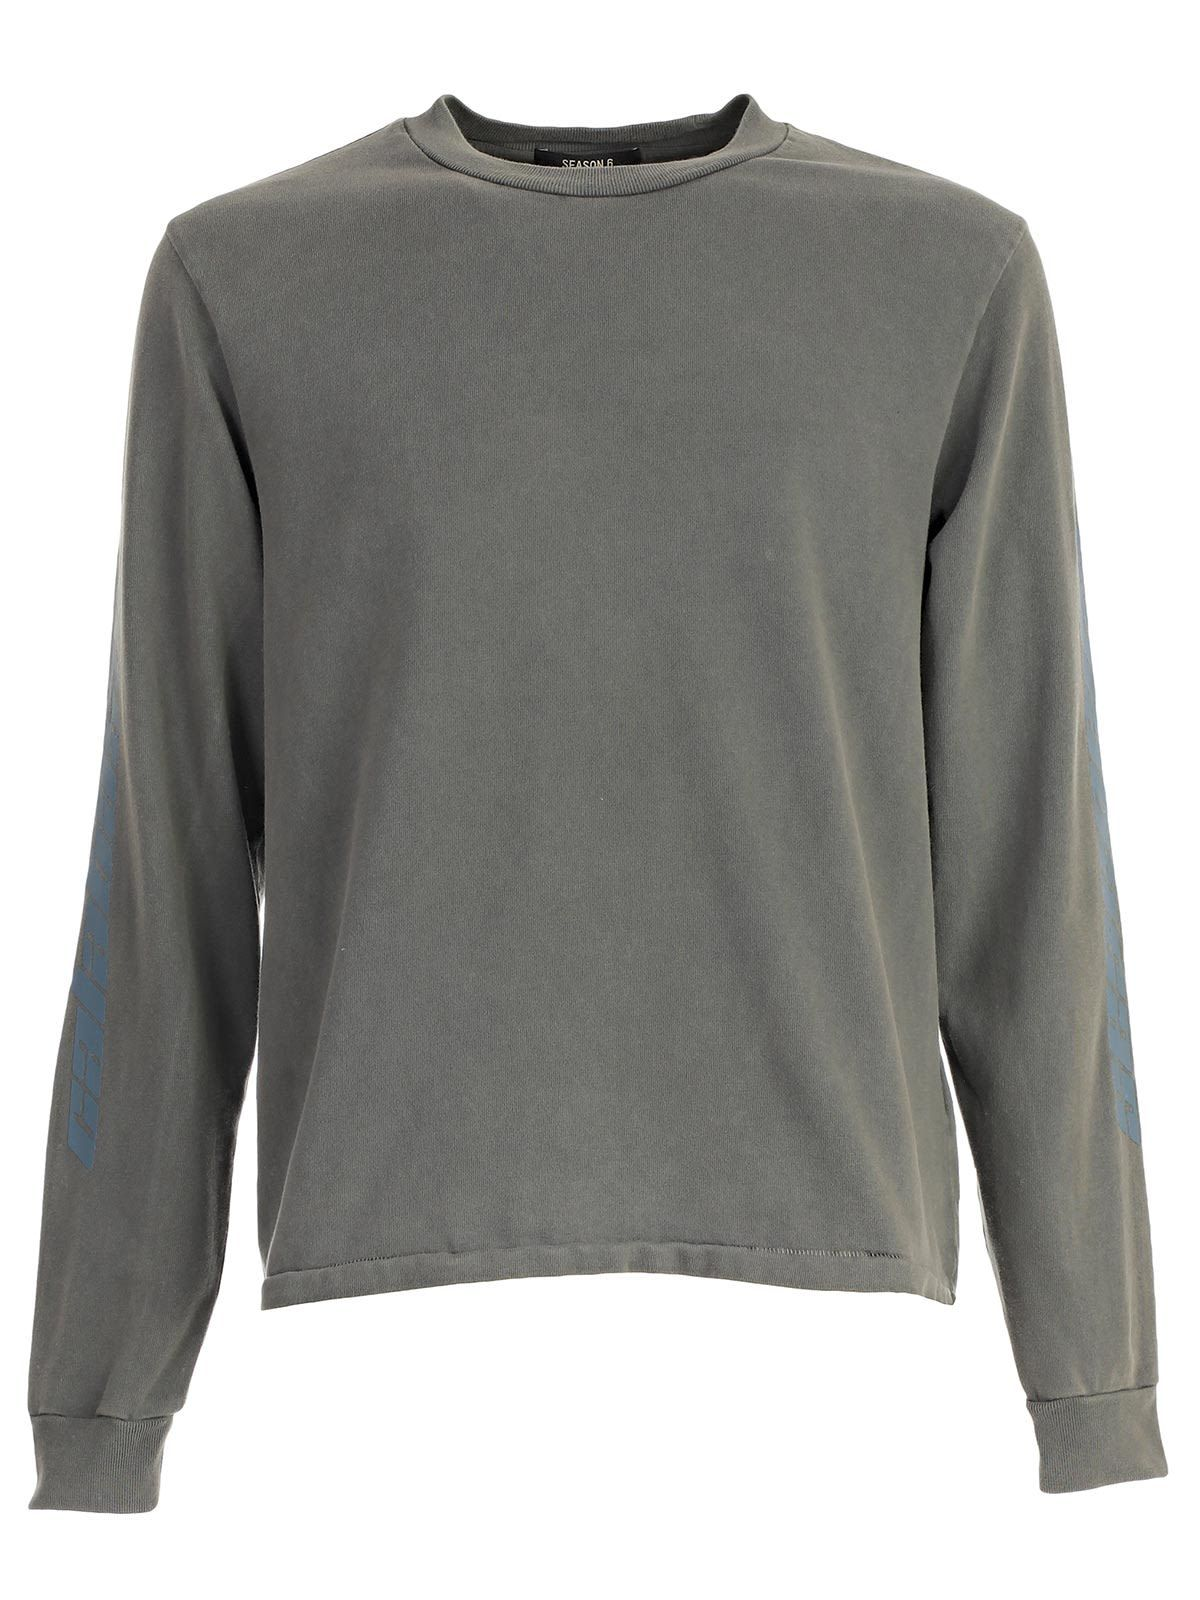 Yeezy Mens Season 6 Long Sleeve Calabasas T-Shirt S Gray